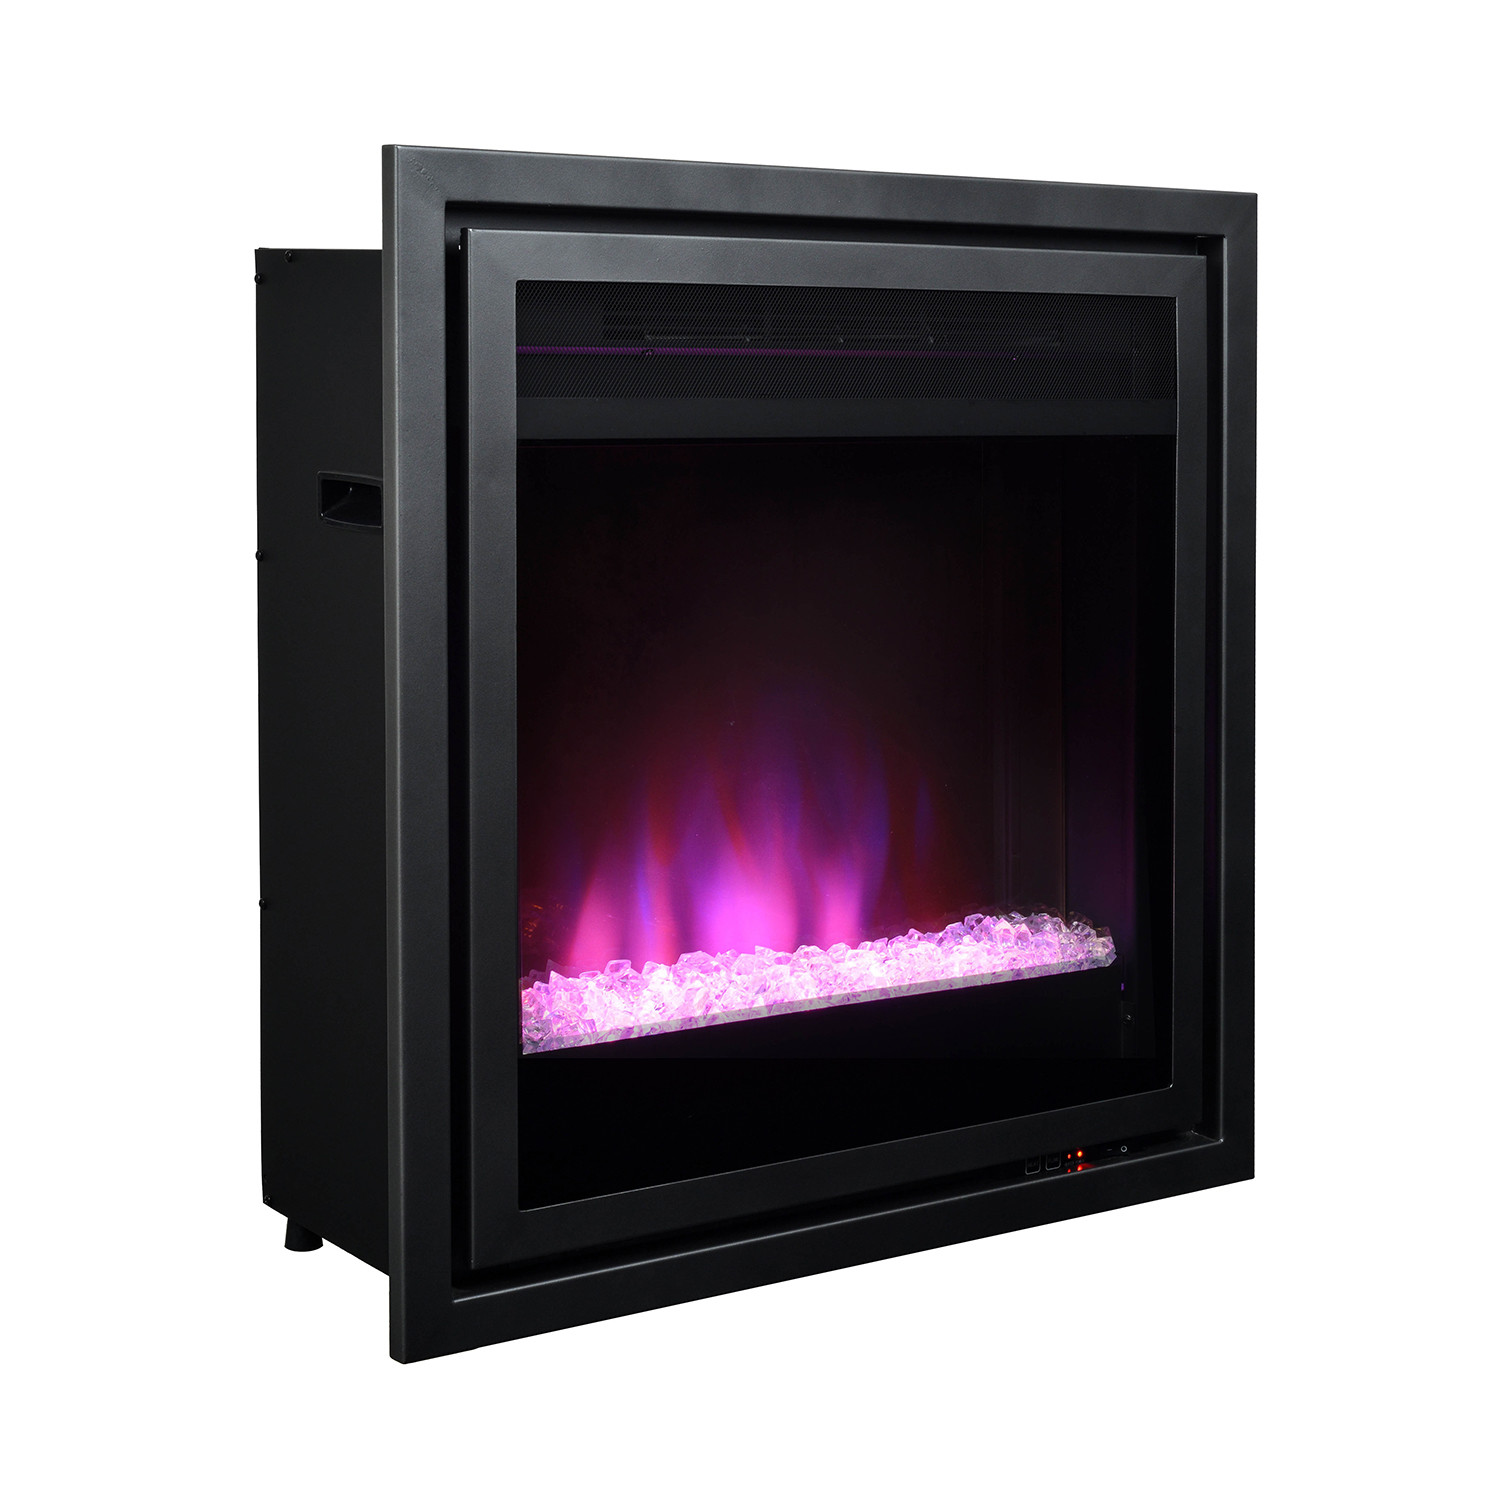 pacific heat  full size contemporary electric fireplace insert  - pacific heat  full size contemporary electric fireplace insert (metallicgrey)